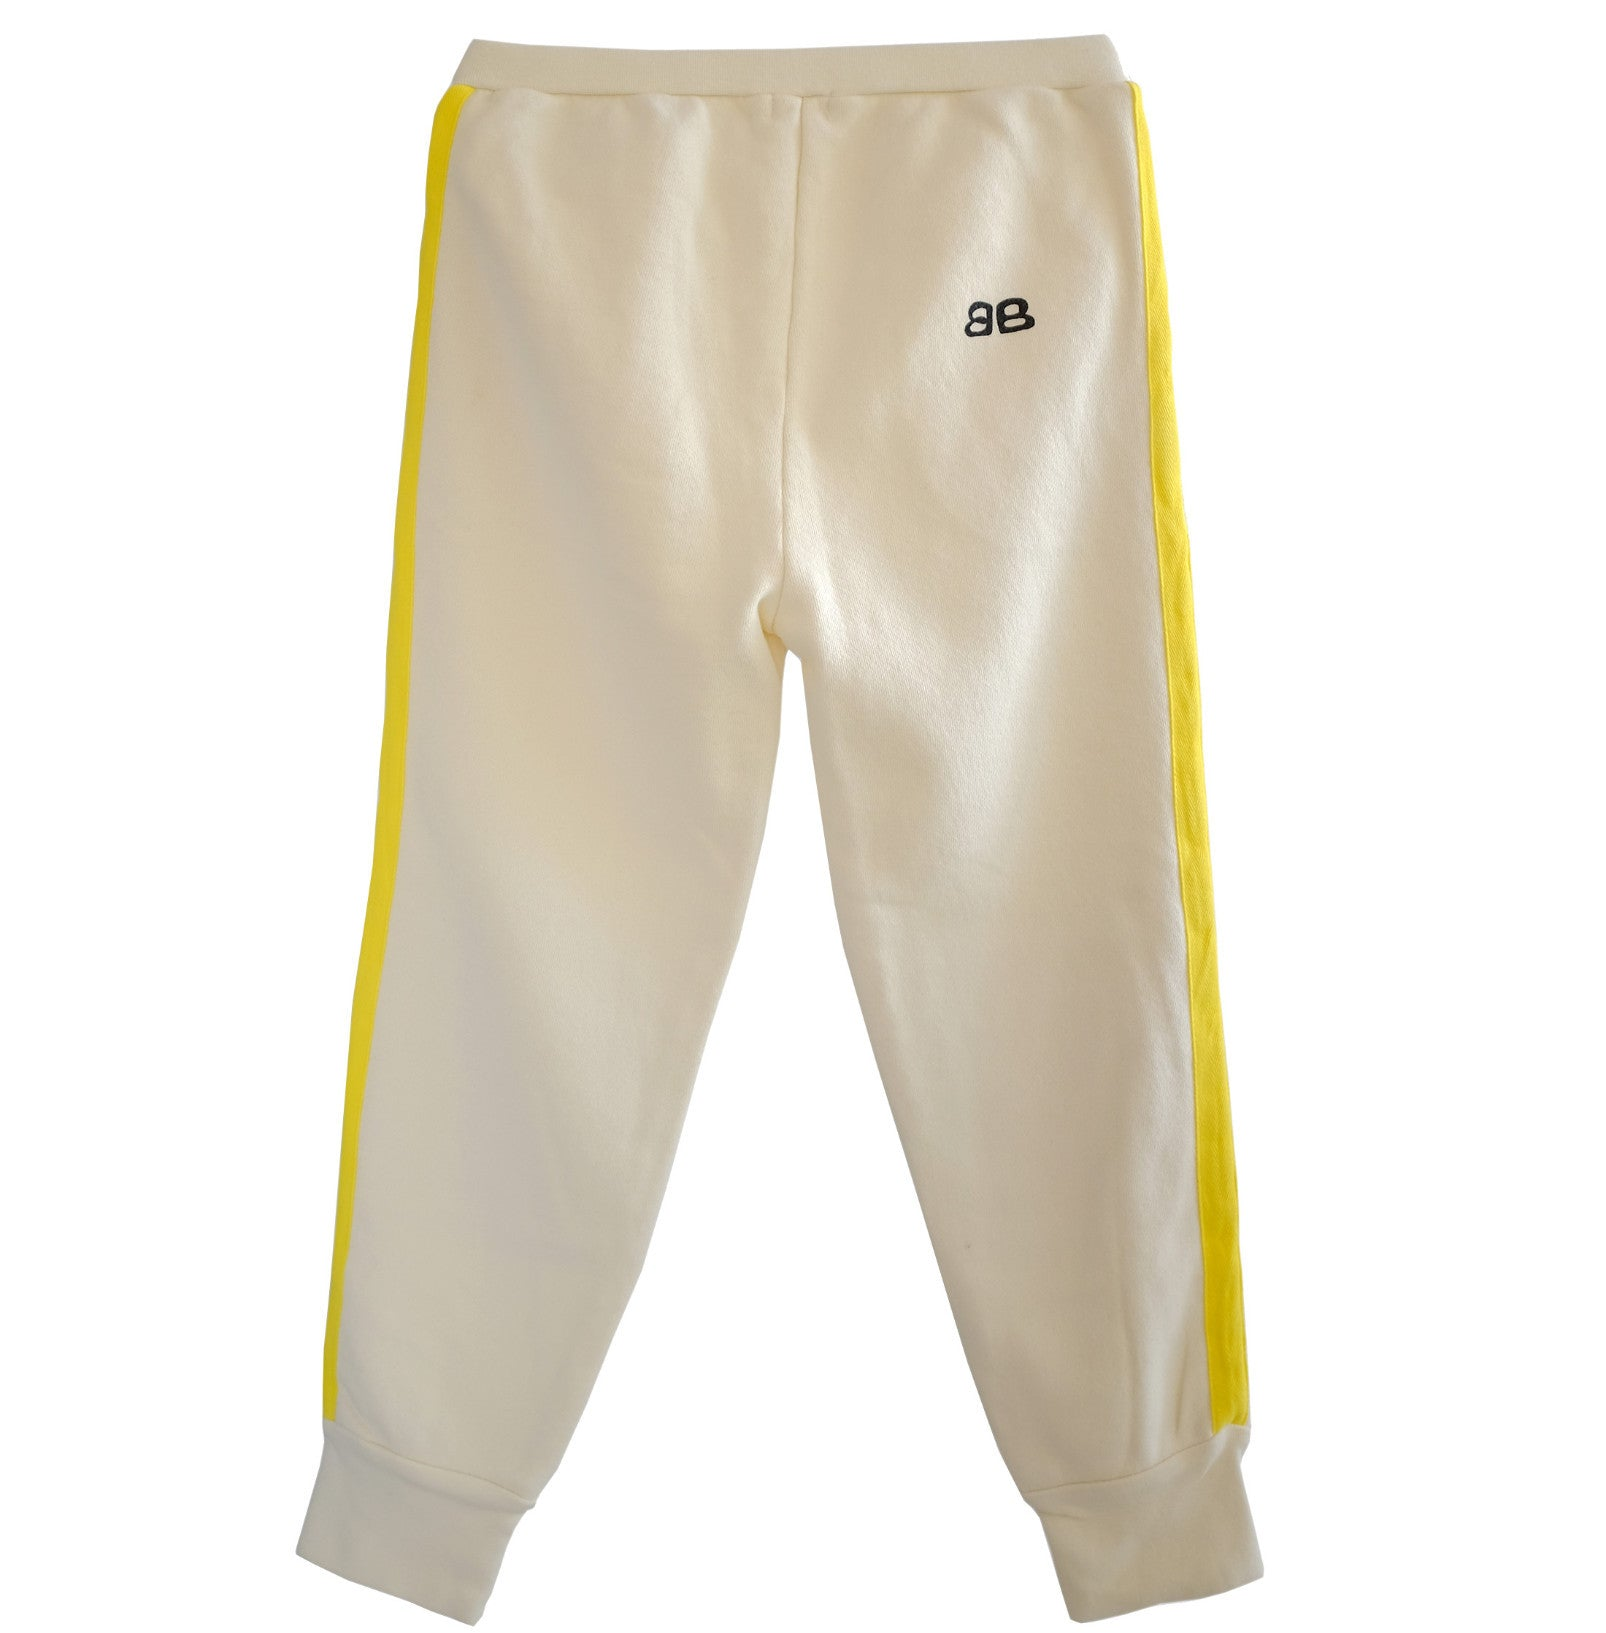 Bandy Button Taz Jogging Pants